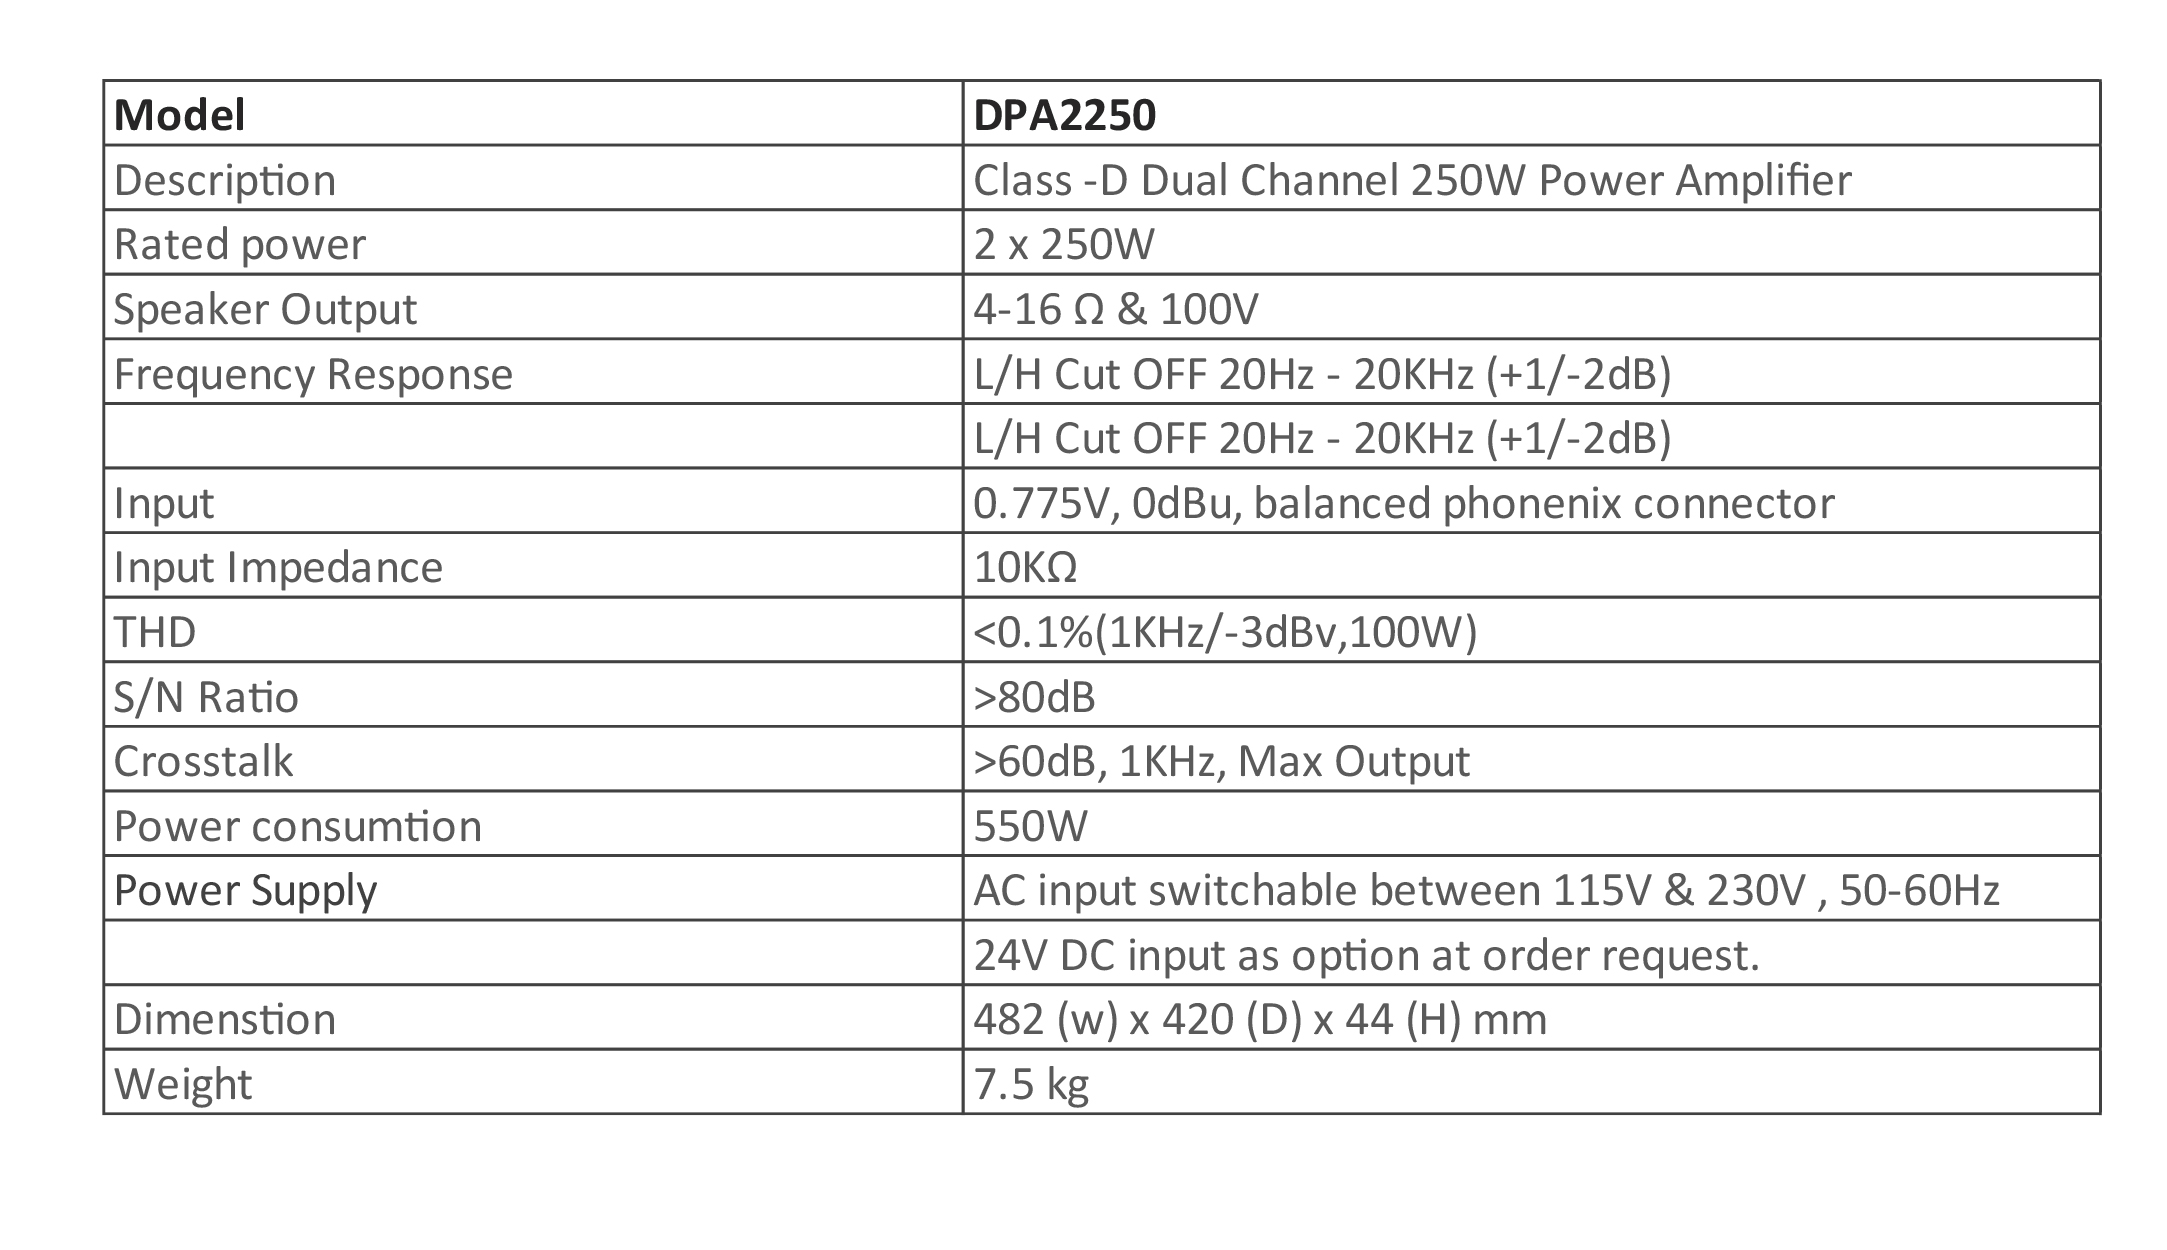 Dpa2250 Class D Two Channel 250w Power Amplifier Public A Circuit Complete Short Overload High Temp Clip And Dc Protection Wide Ac Input Switchable Between 115v 230v